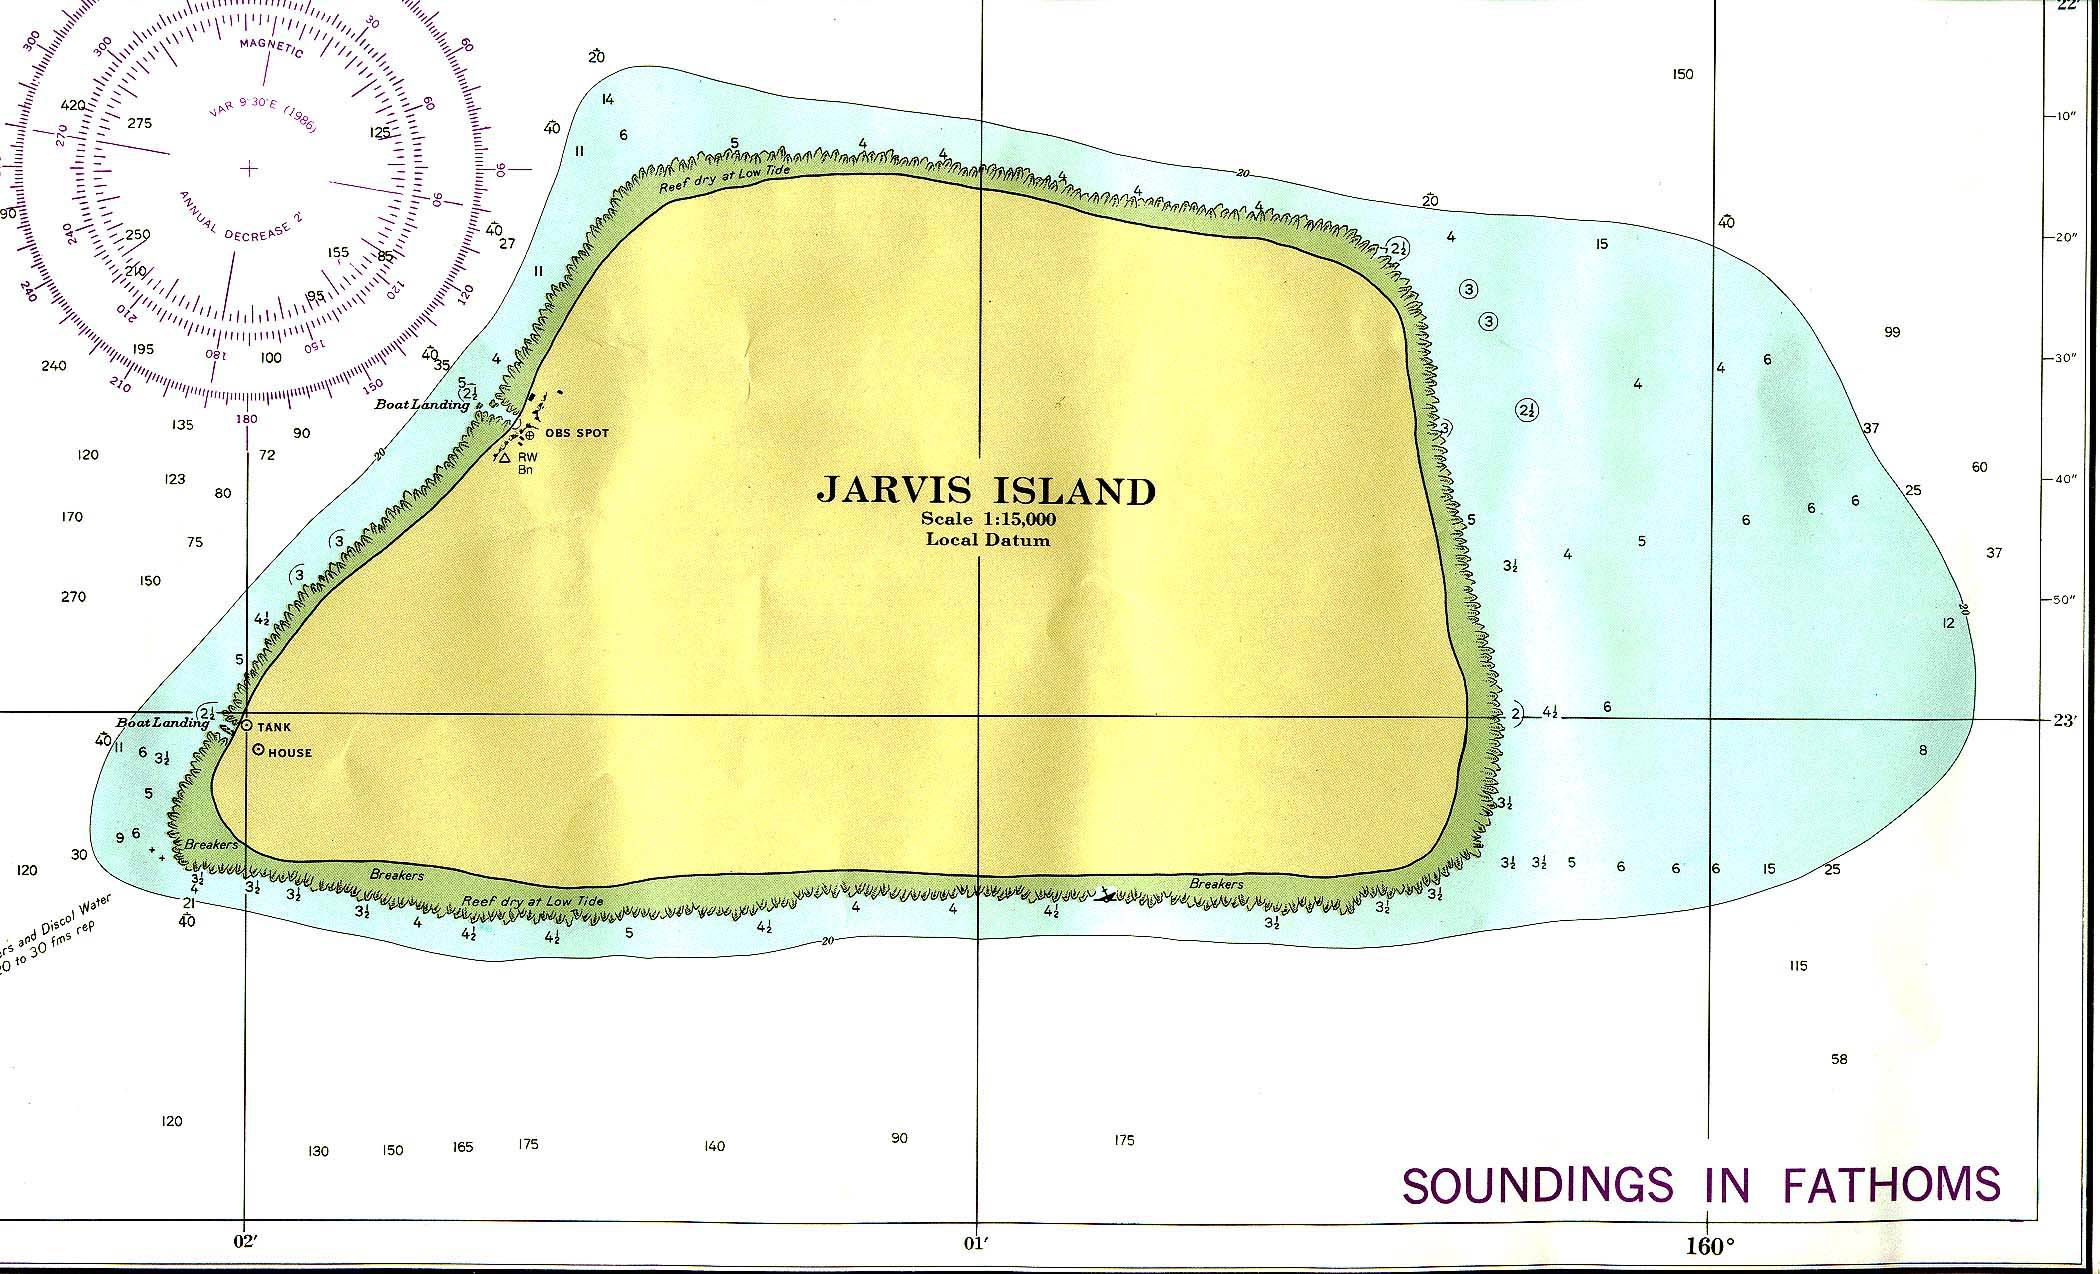 Jarvis Island. Nautical char. Not for navigational use